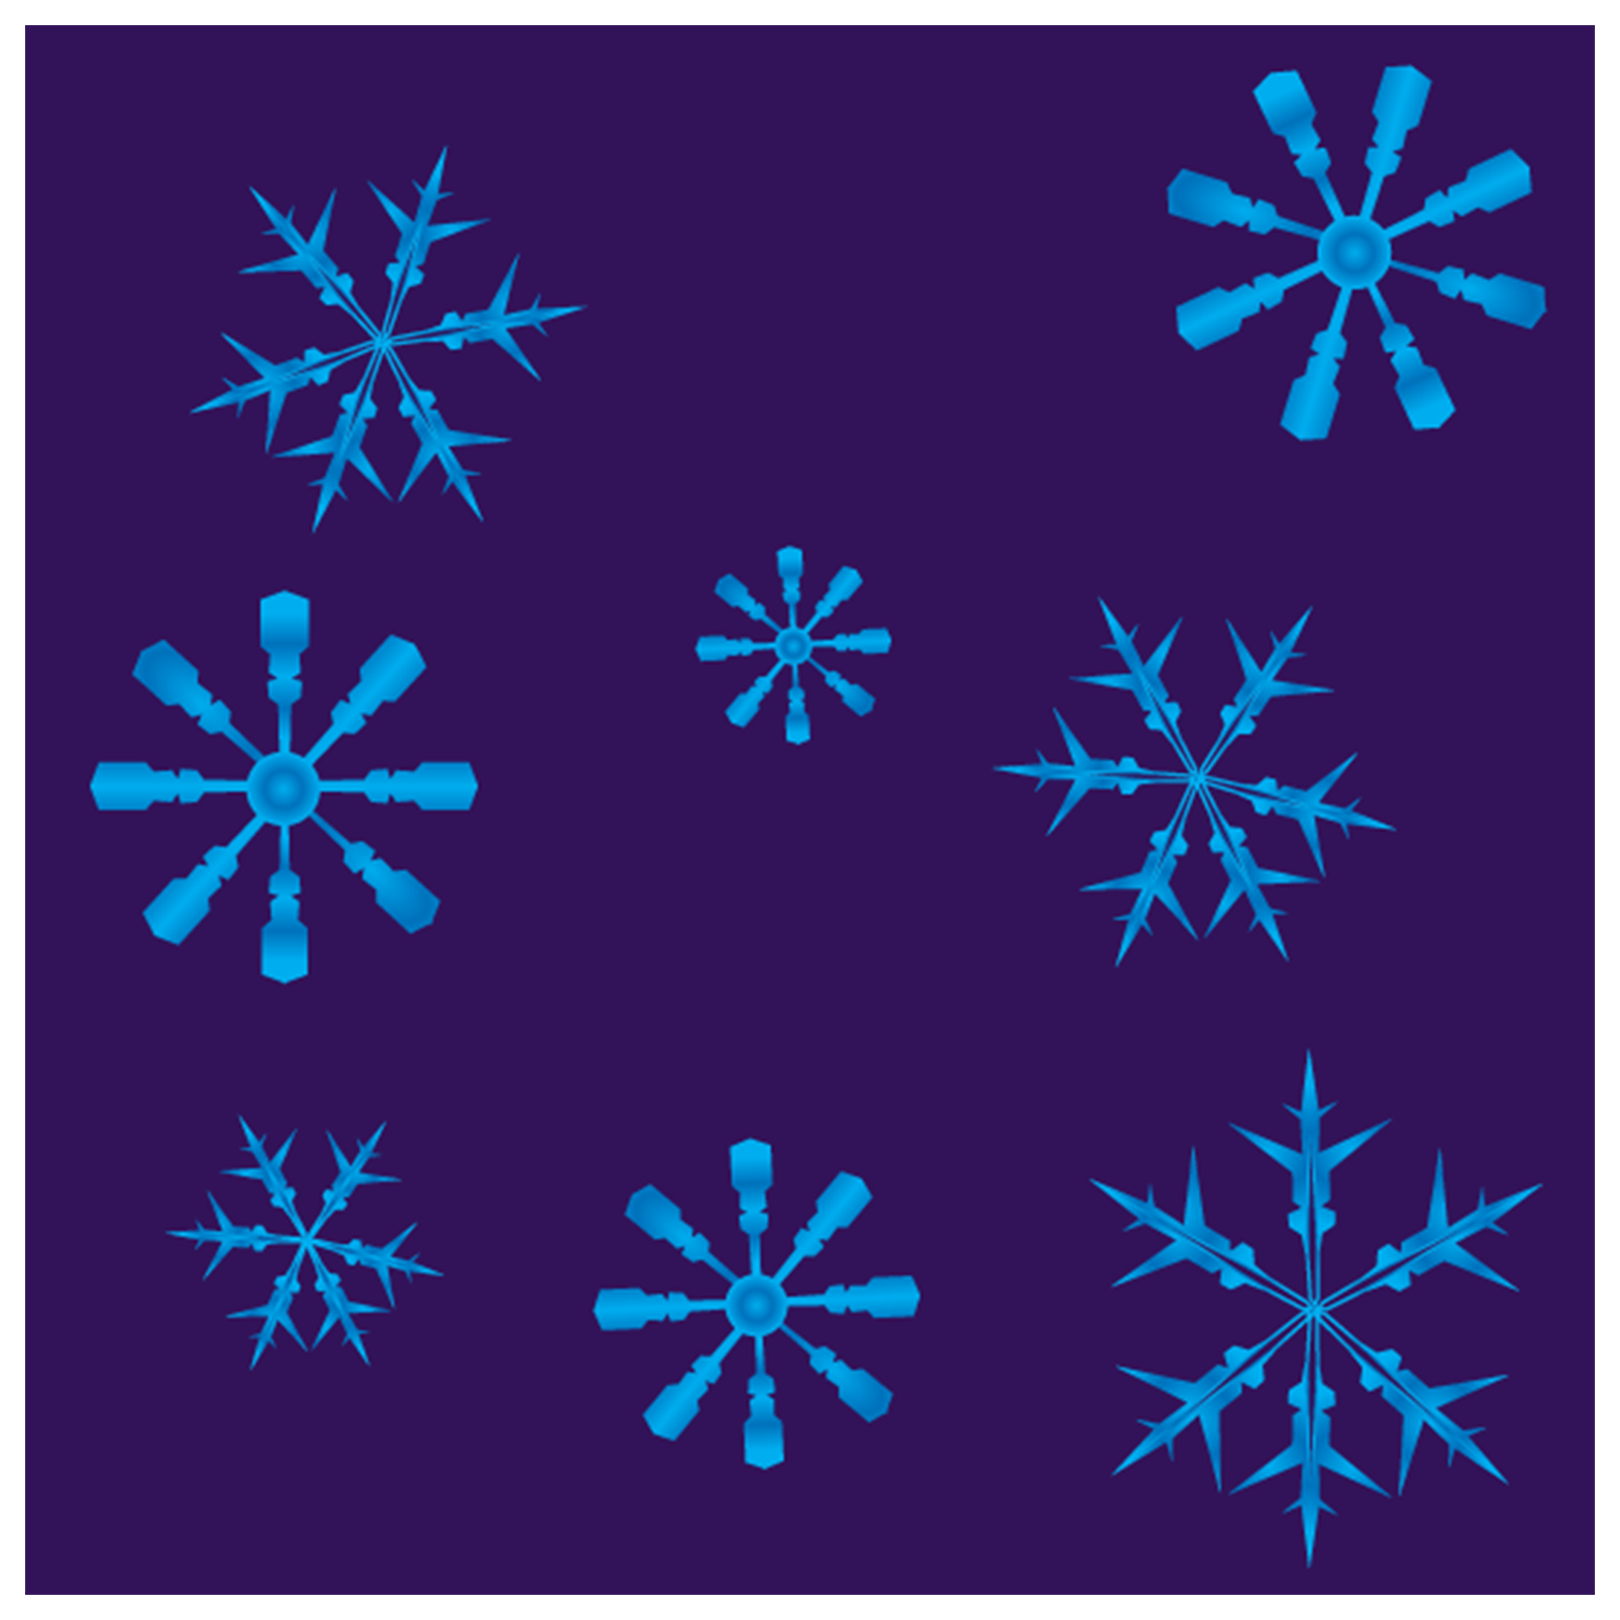 holiday-snowflake-background-1620x1620.png